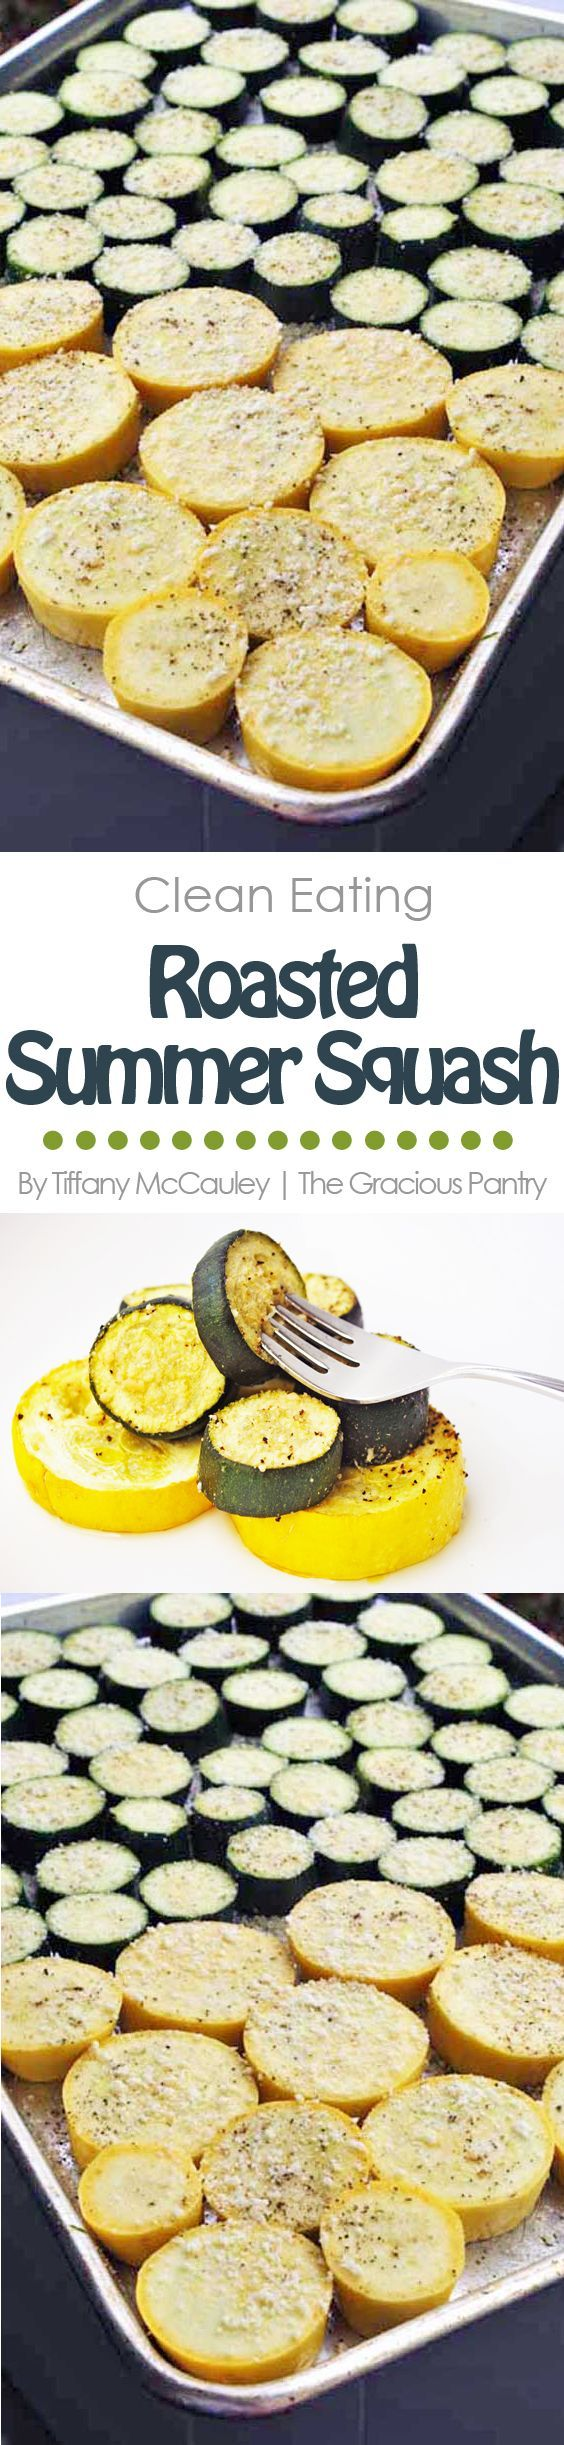 This Clean Eating Roasted Summer Squash Recipe is a delicious way to get more veggies in your day! (And keep up with a prolific, summer garden!) ~ http://www.thegraciouspantry.com